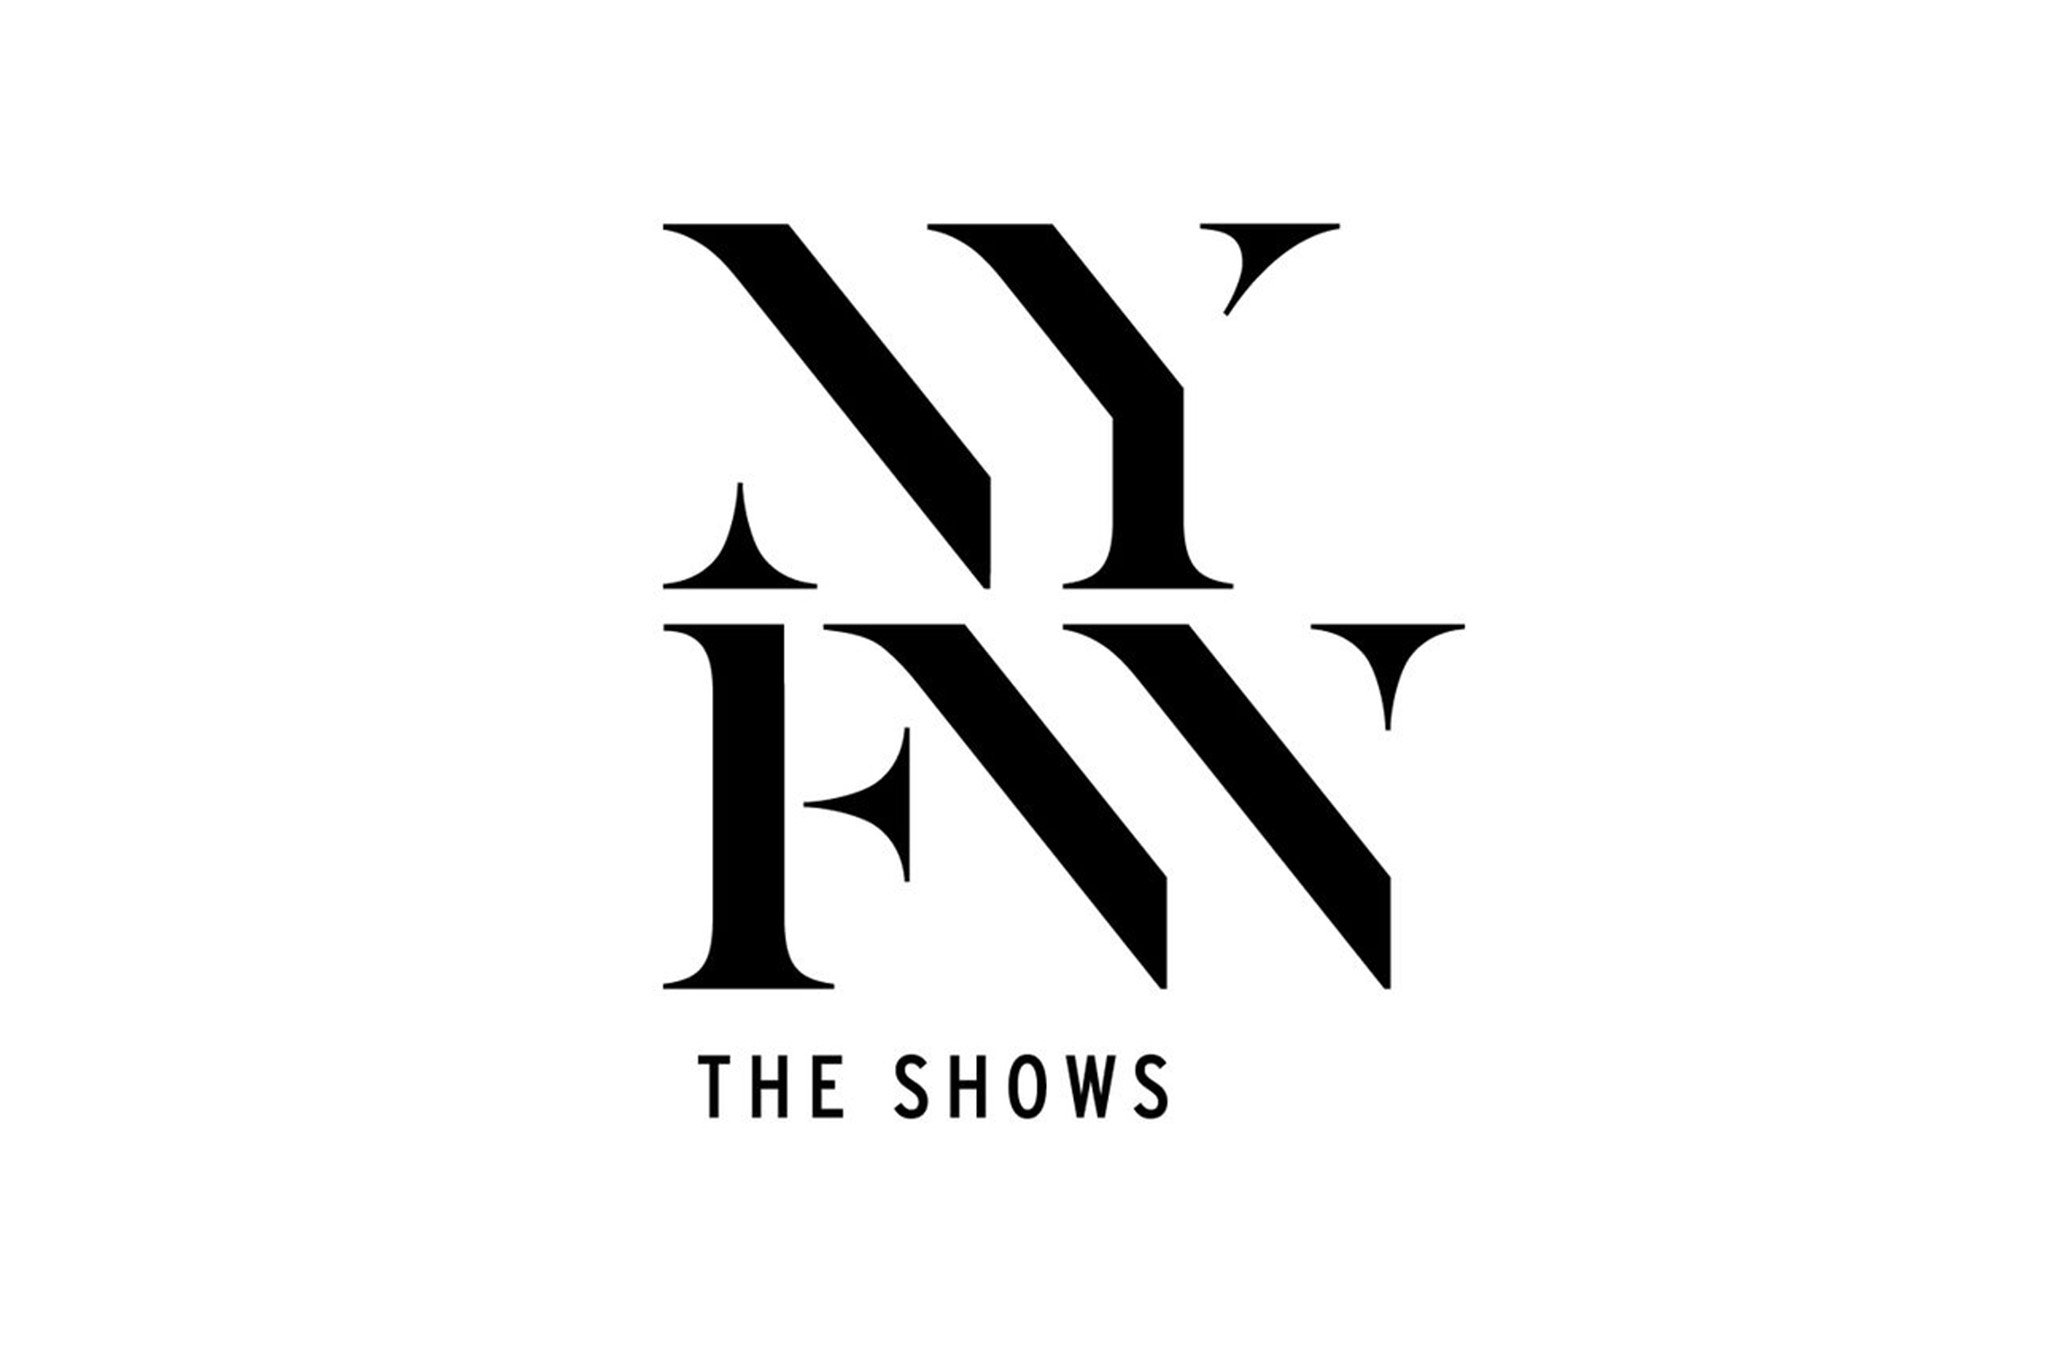 NYFW: The Shows logo.